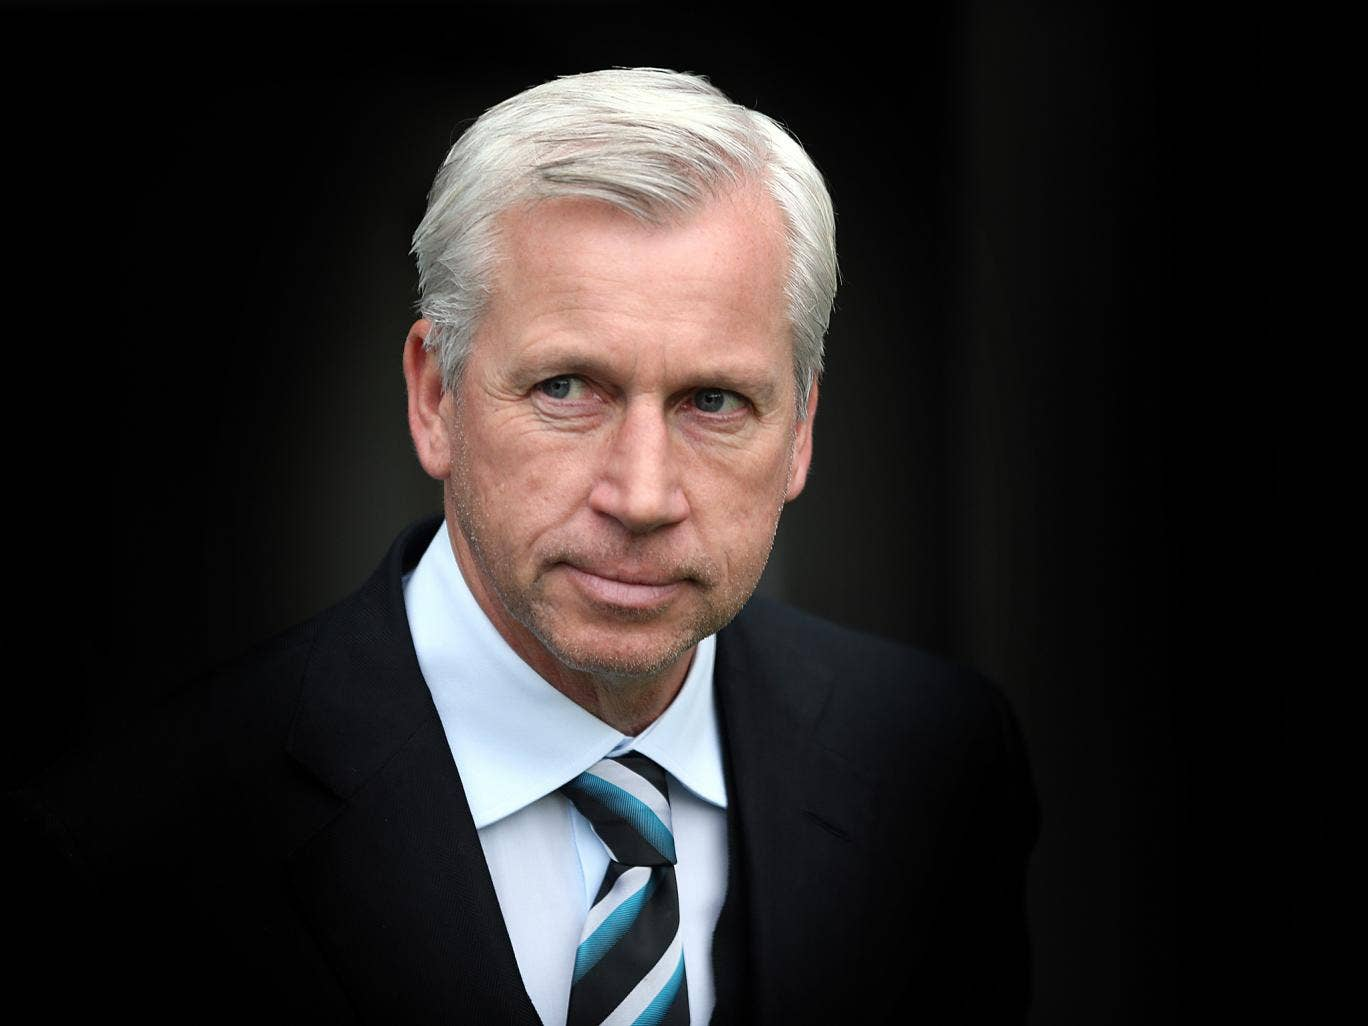 Alan Pardew has admitted that last season's shock defeat to Sunderland has left him scarred